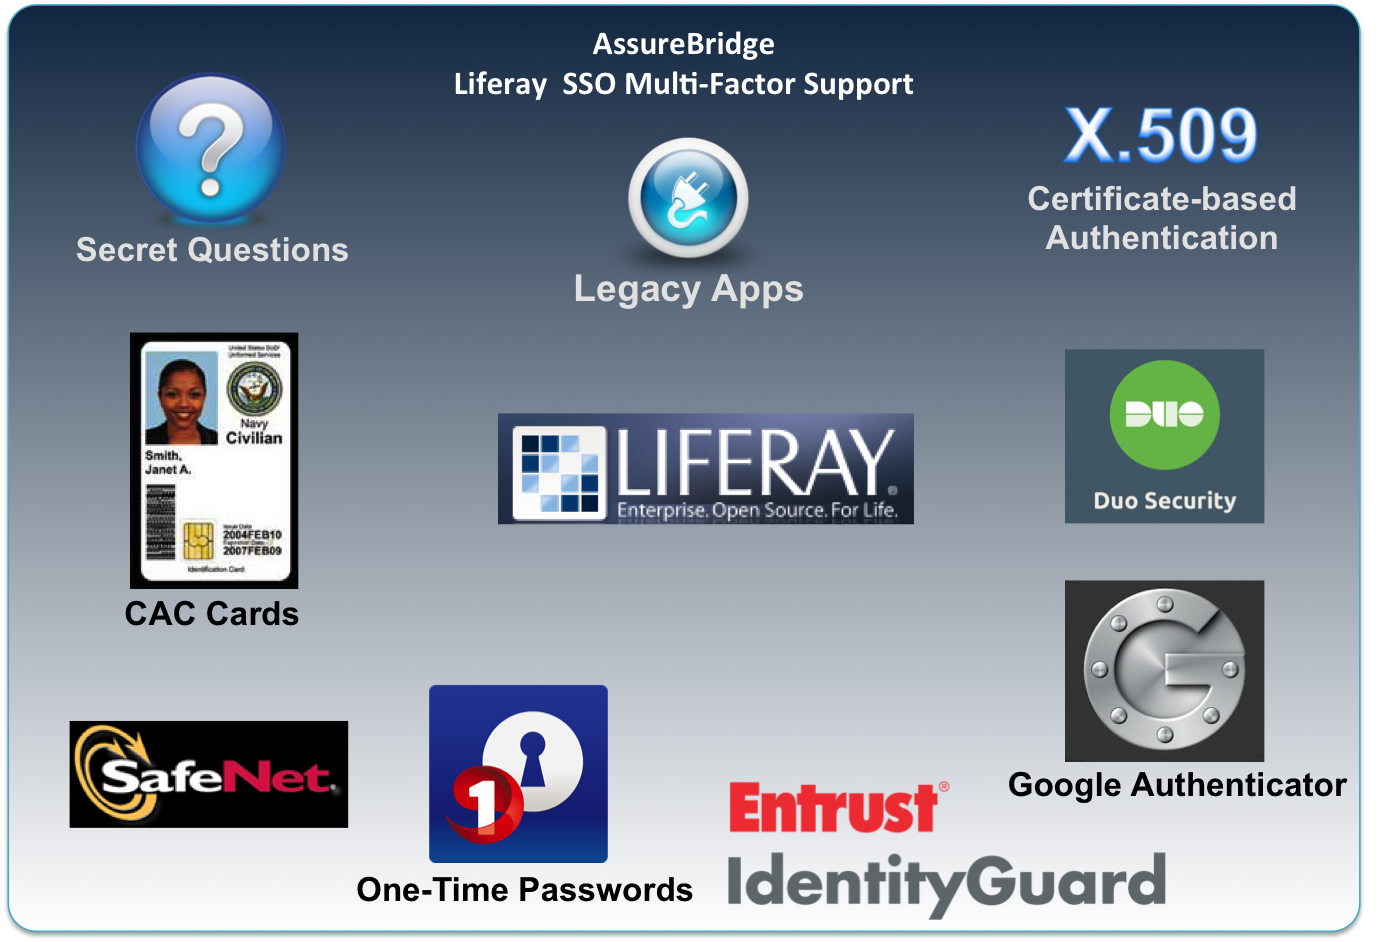 IDM 360™ Liferay Identity Management Integration - IDM 360